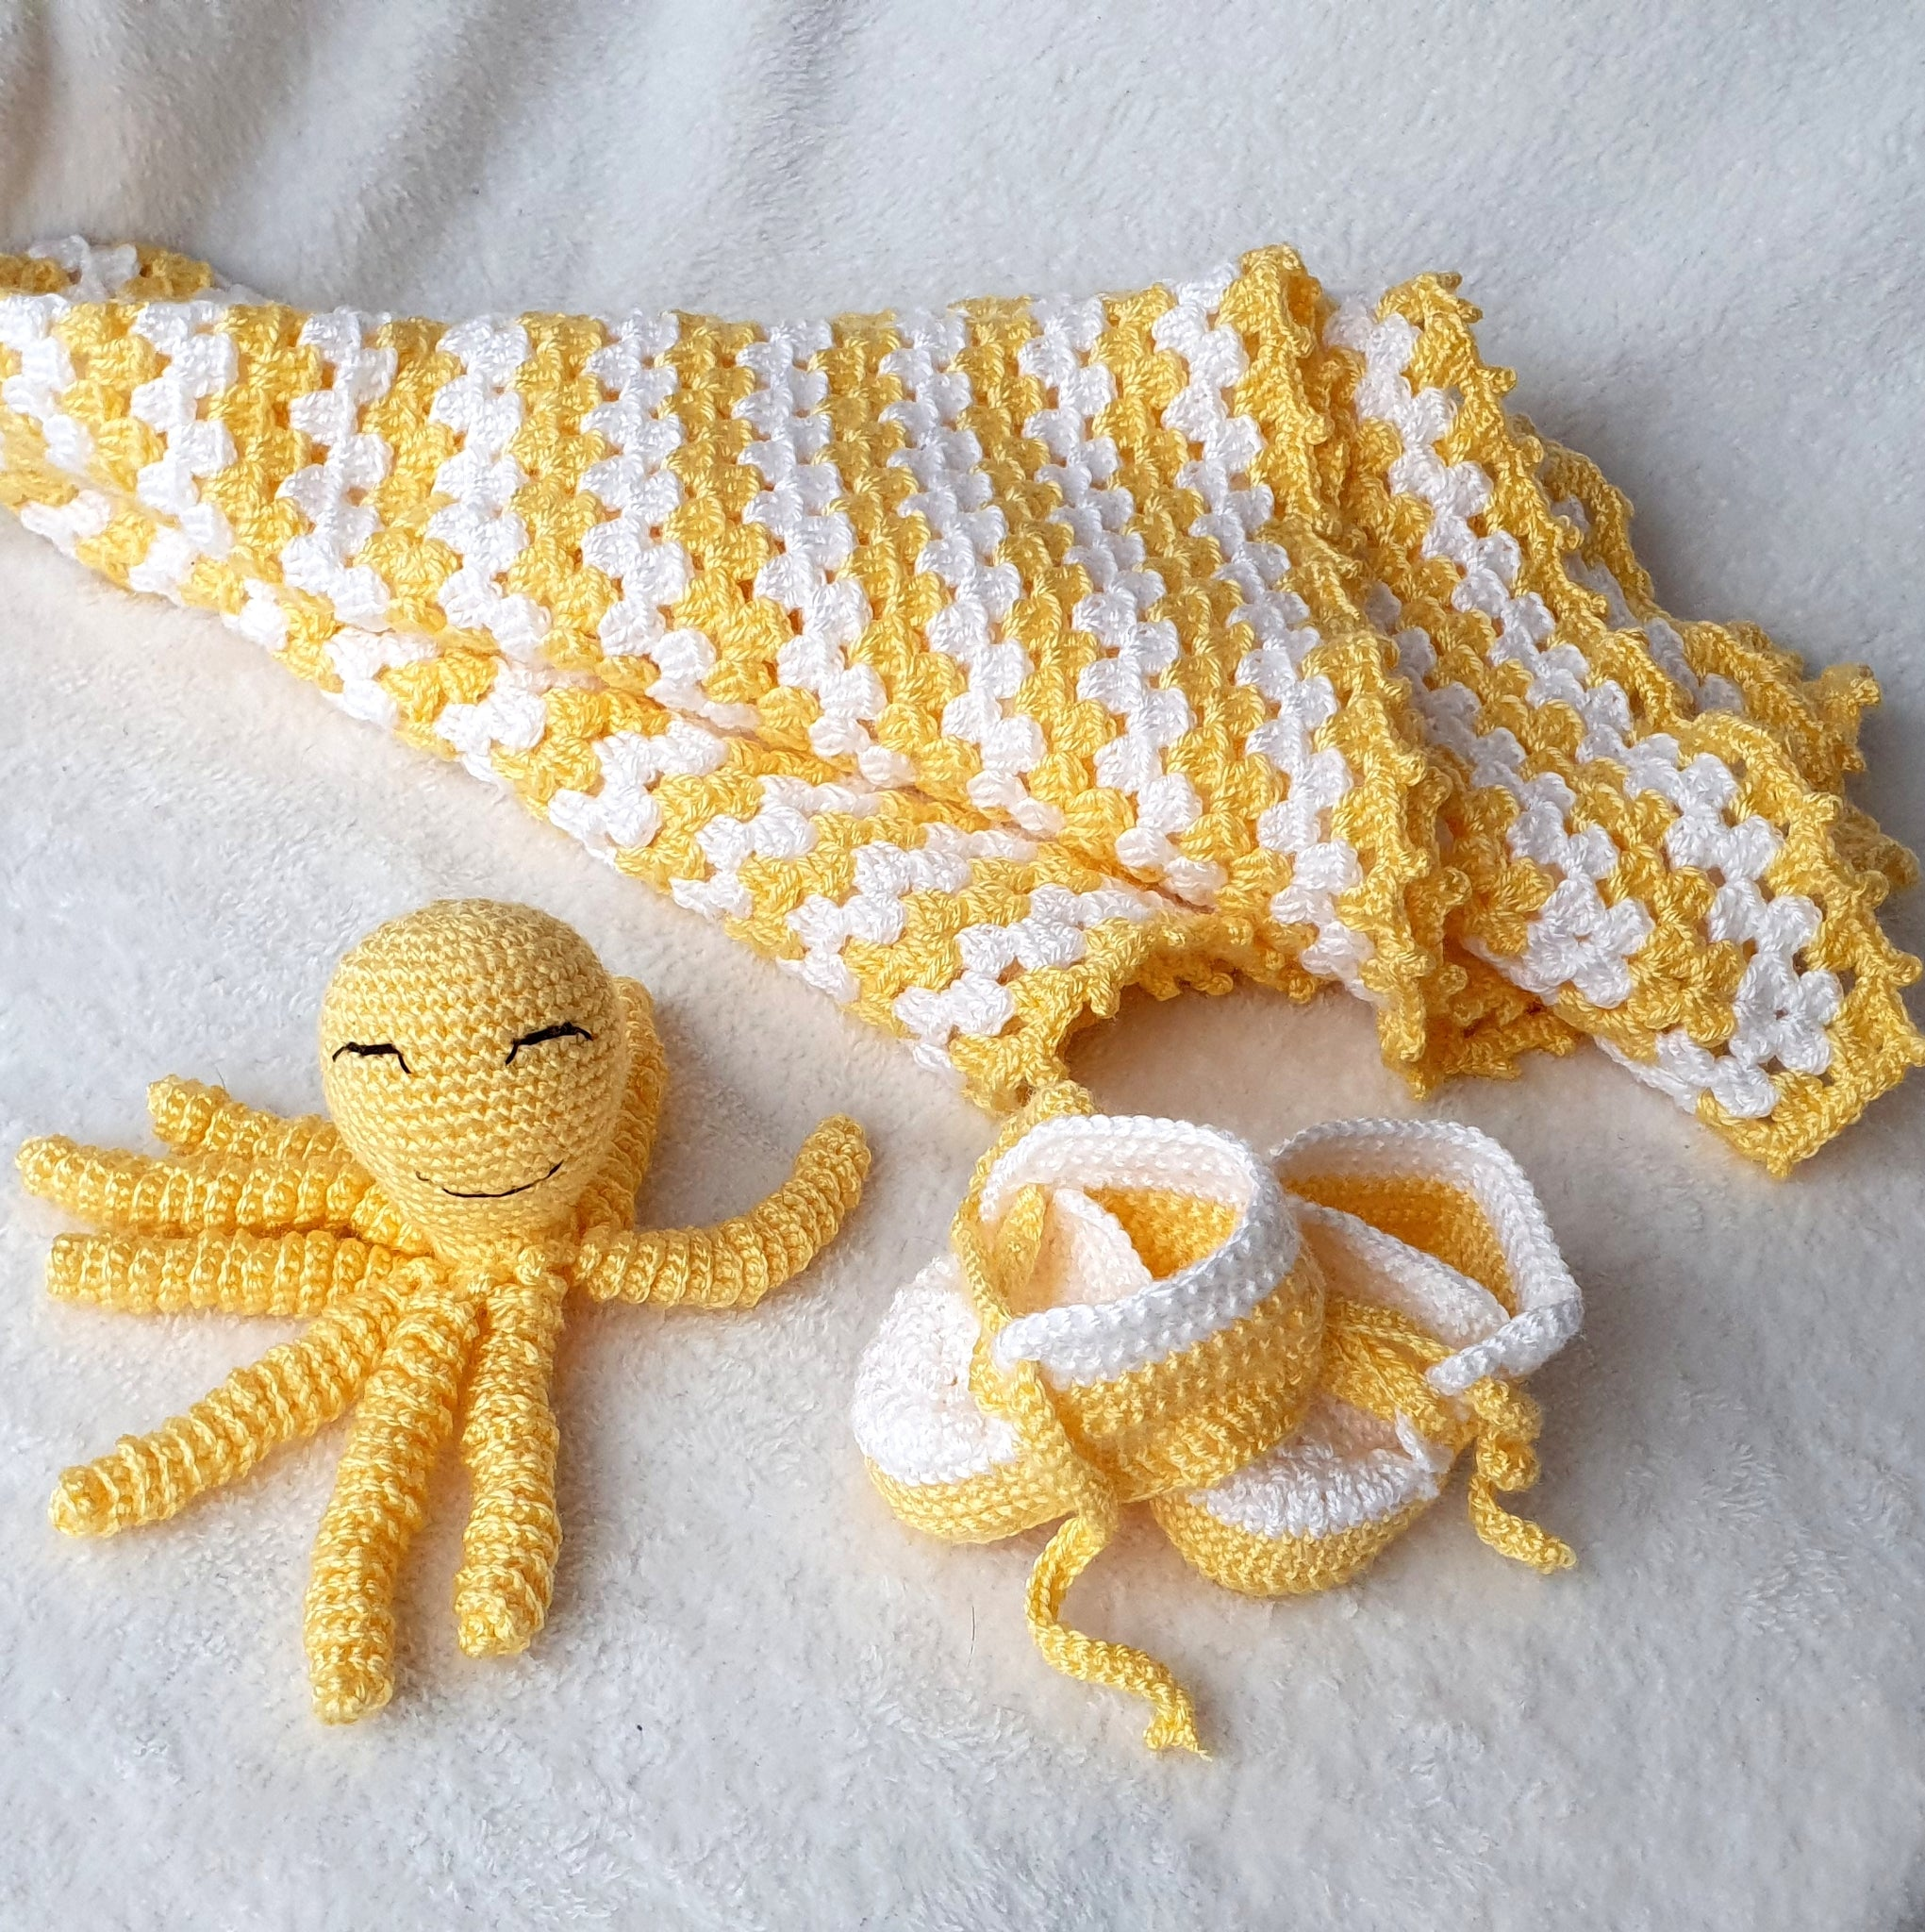 Baby Boy Girl Crochet Gift Box - Blanket, Shoes, Toy